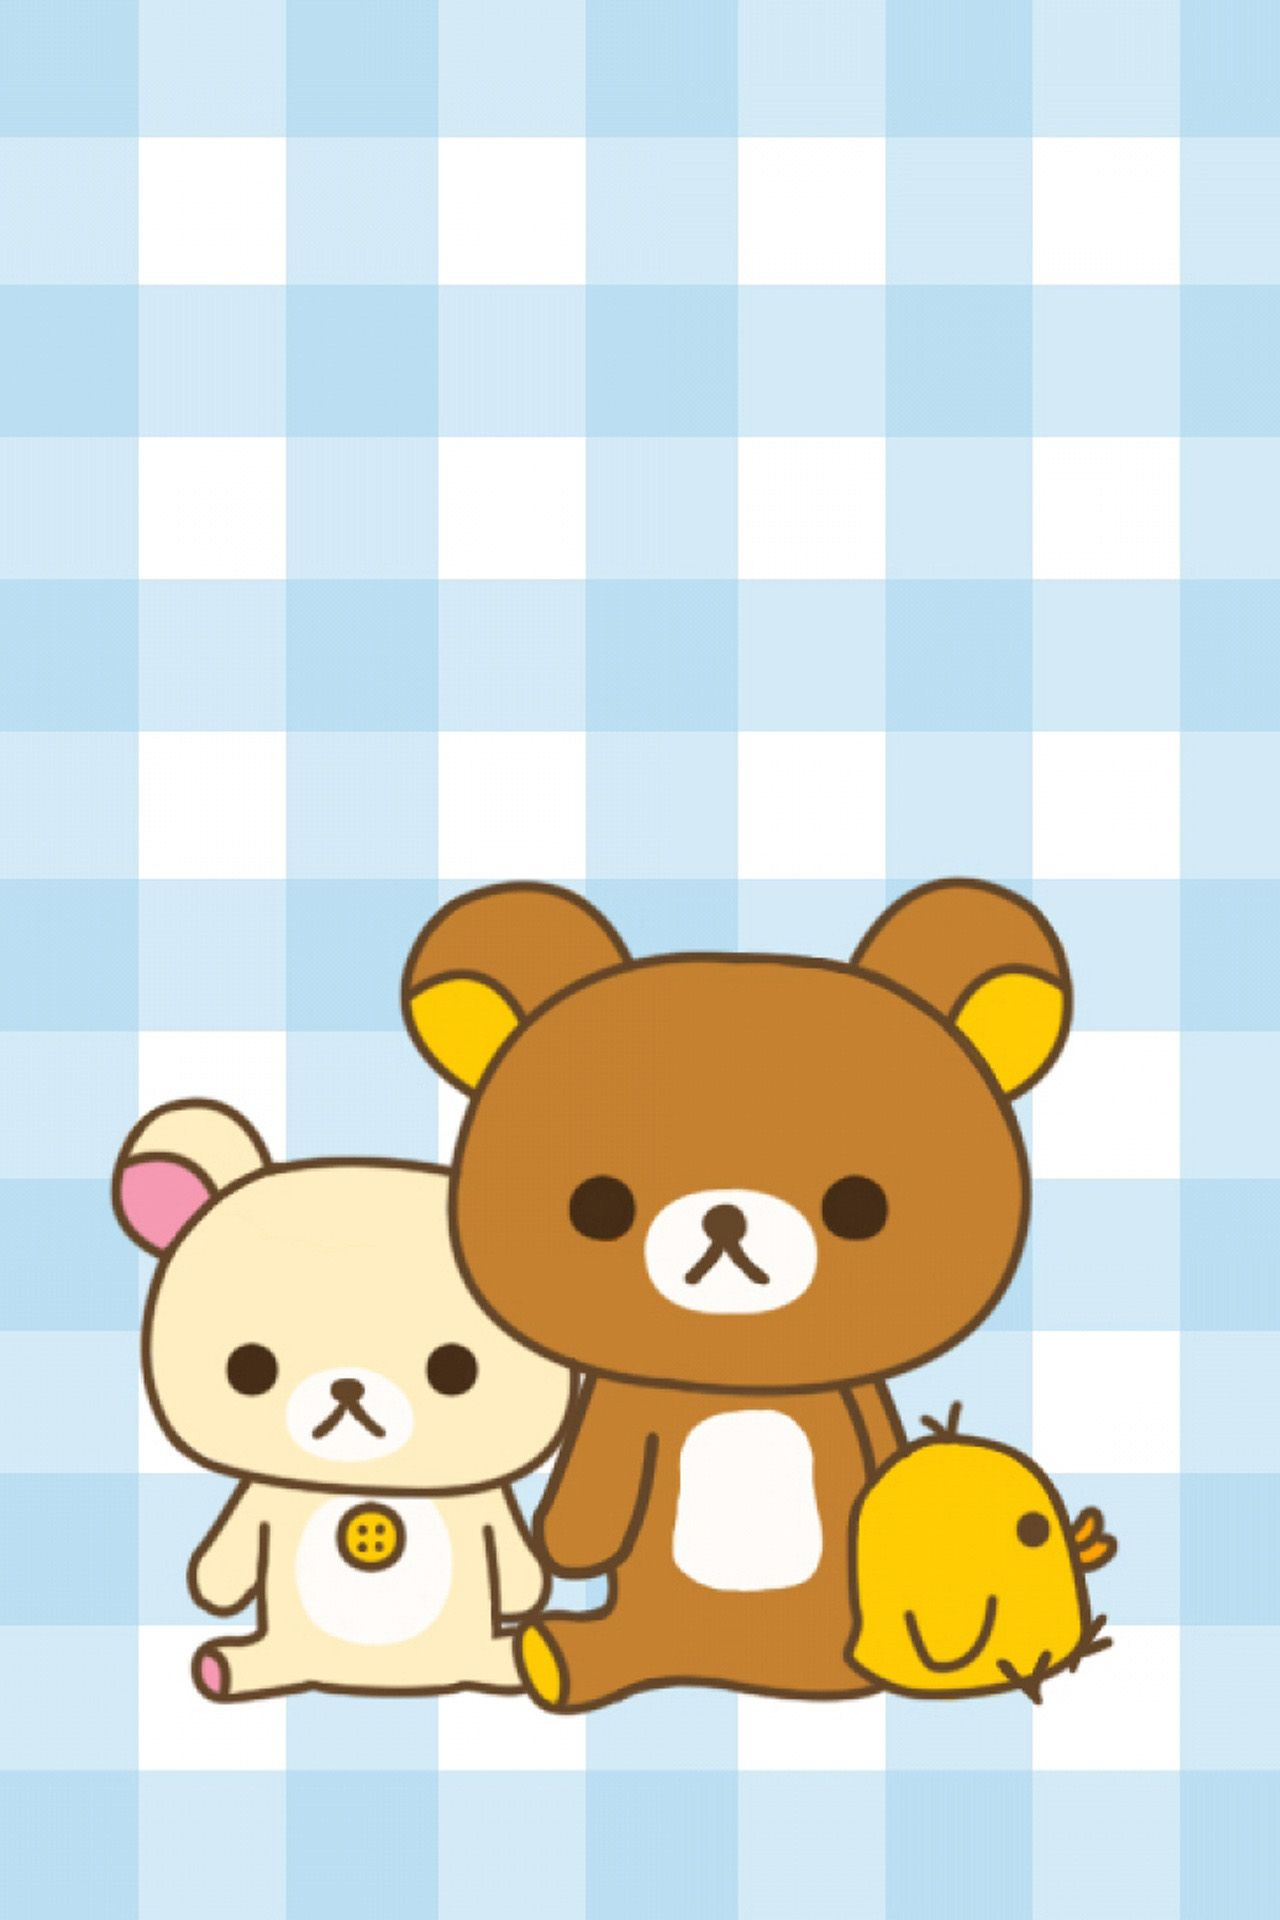 Cute Rilakkuma Wallpaper Phone Rilakkuma wallpaper